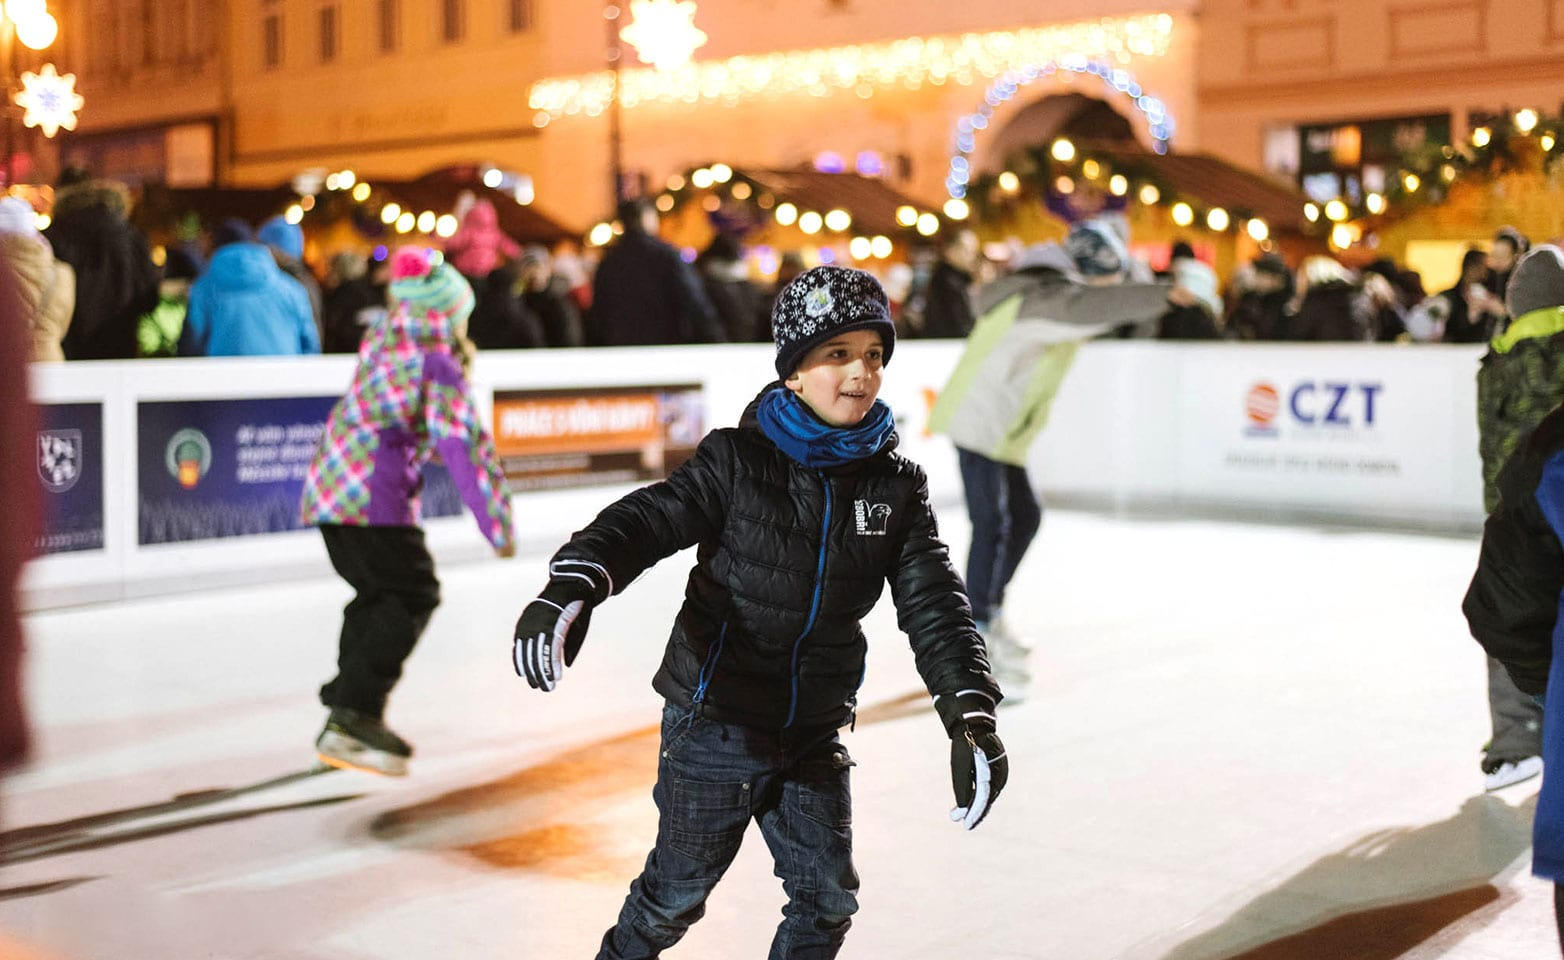 Winter Christmas blues adé: Winterdorf in Winterberg offers besides Glice® Synthetic Ice Christmas Rink magical times for all ages